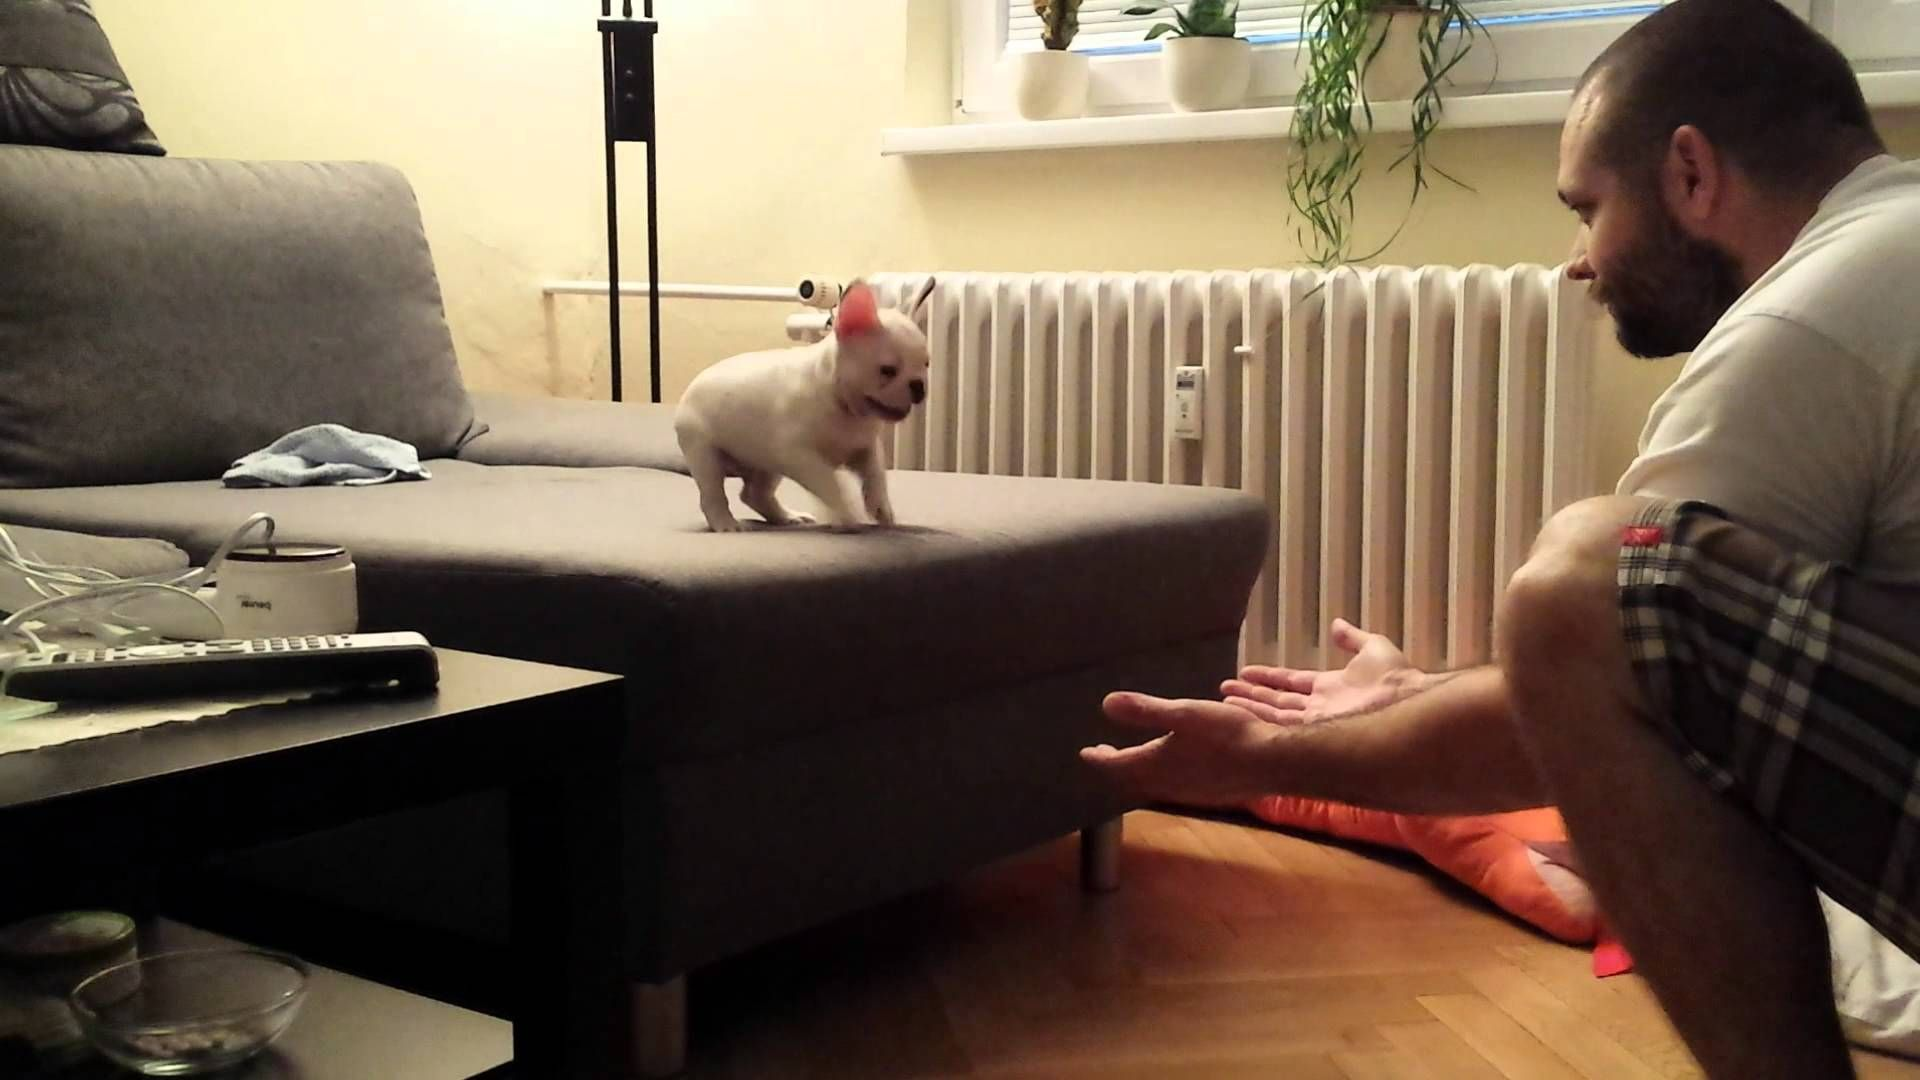 French Bulldog Puppy Fearlessly Jumps Off The Sofa And Into His